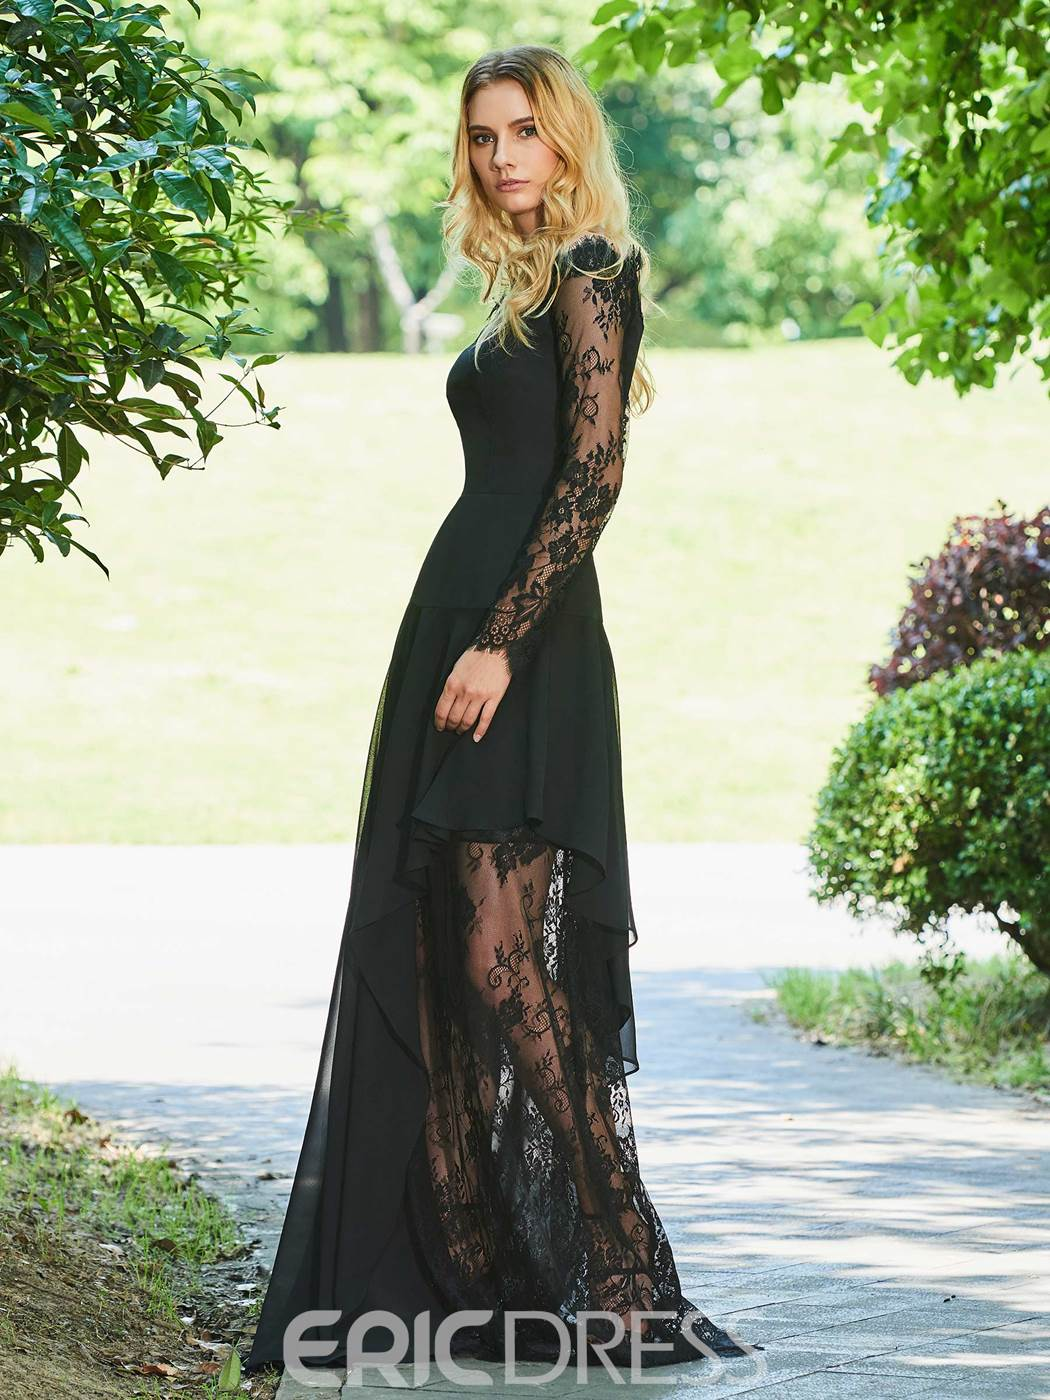 Ericdress A Line Off The Shoulder Lace Black Evening Dress With Long Sleeve